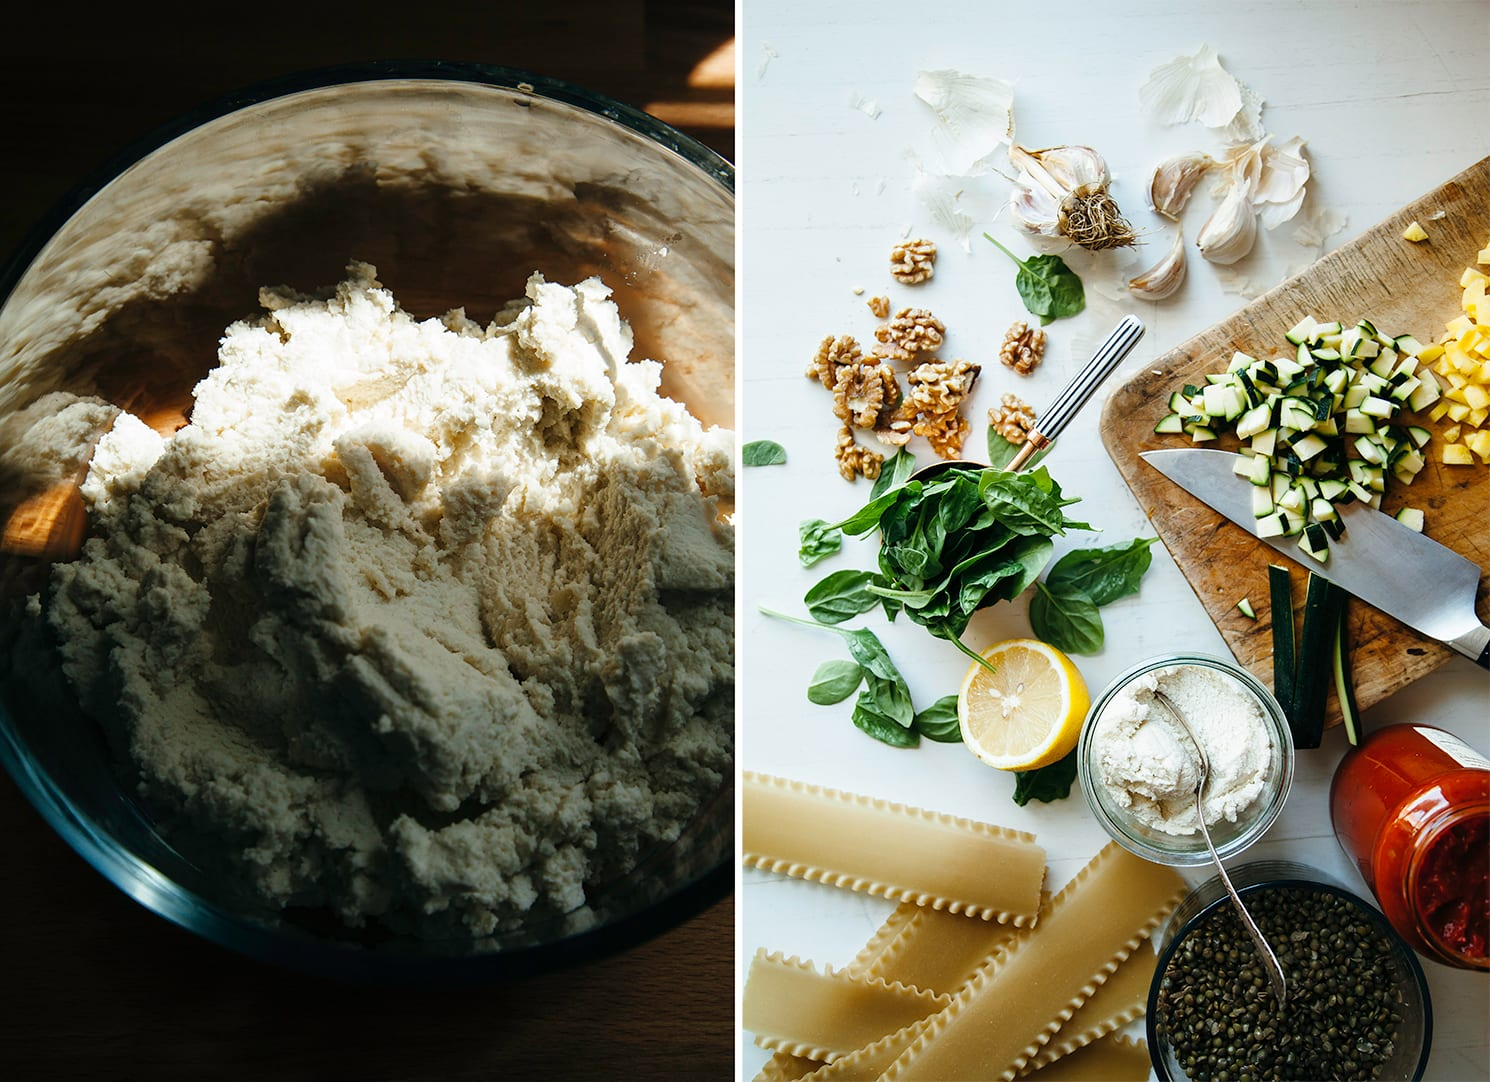 Two images show a bowl of vegan ricotta and an overhead shot of prepped ingredients for a plant-based lasagna.